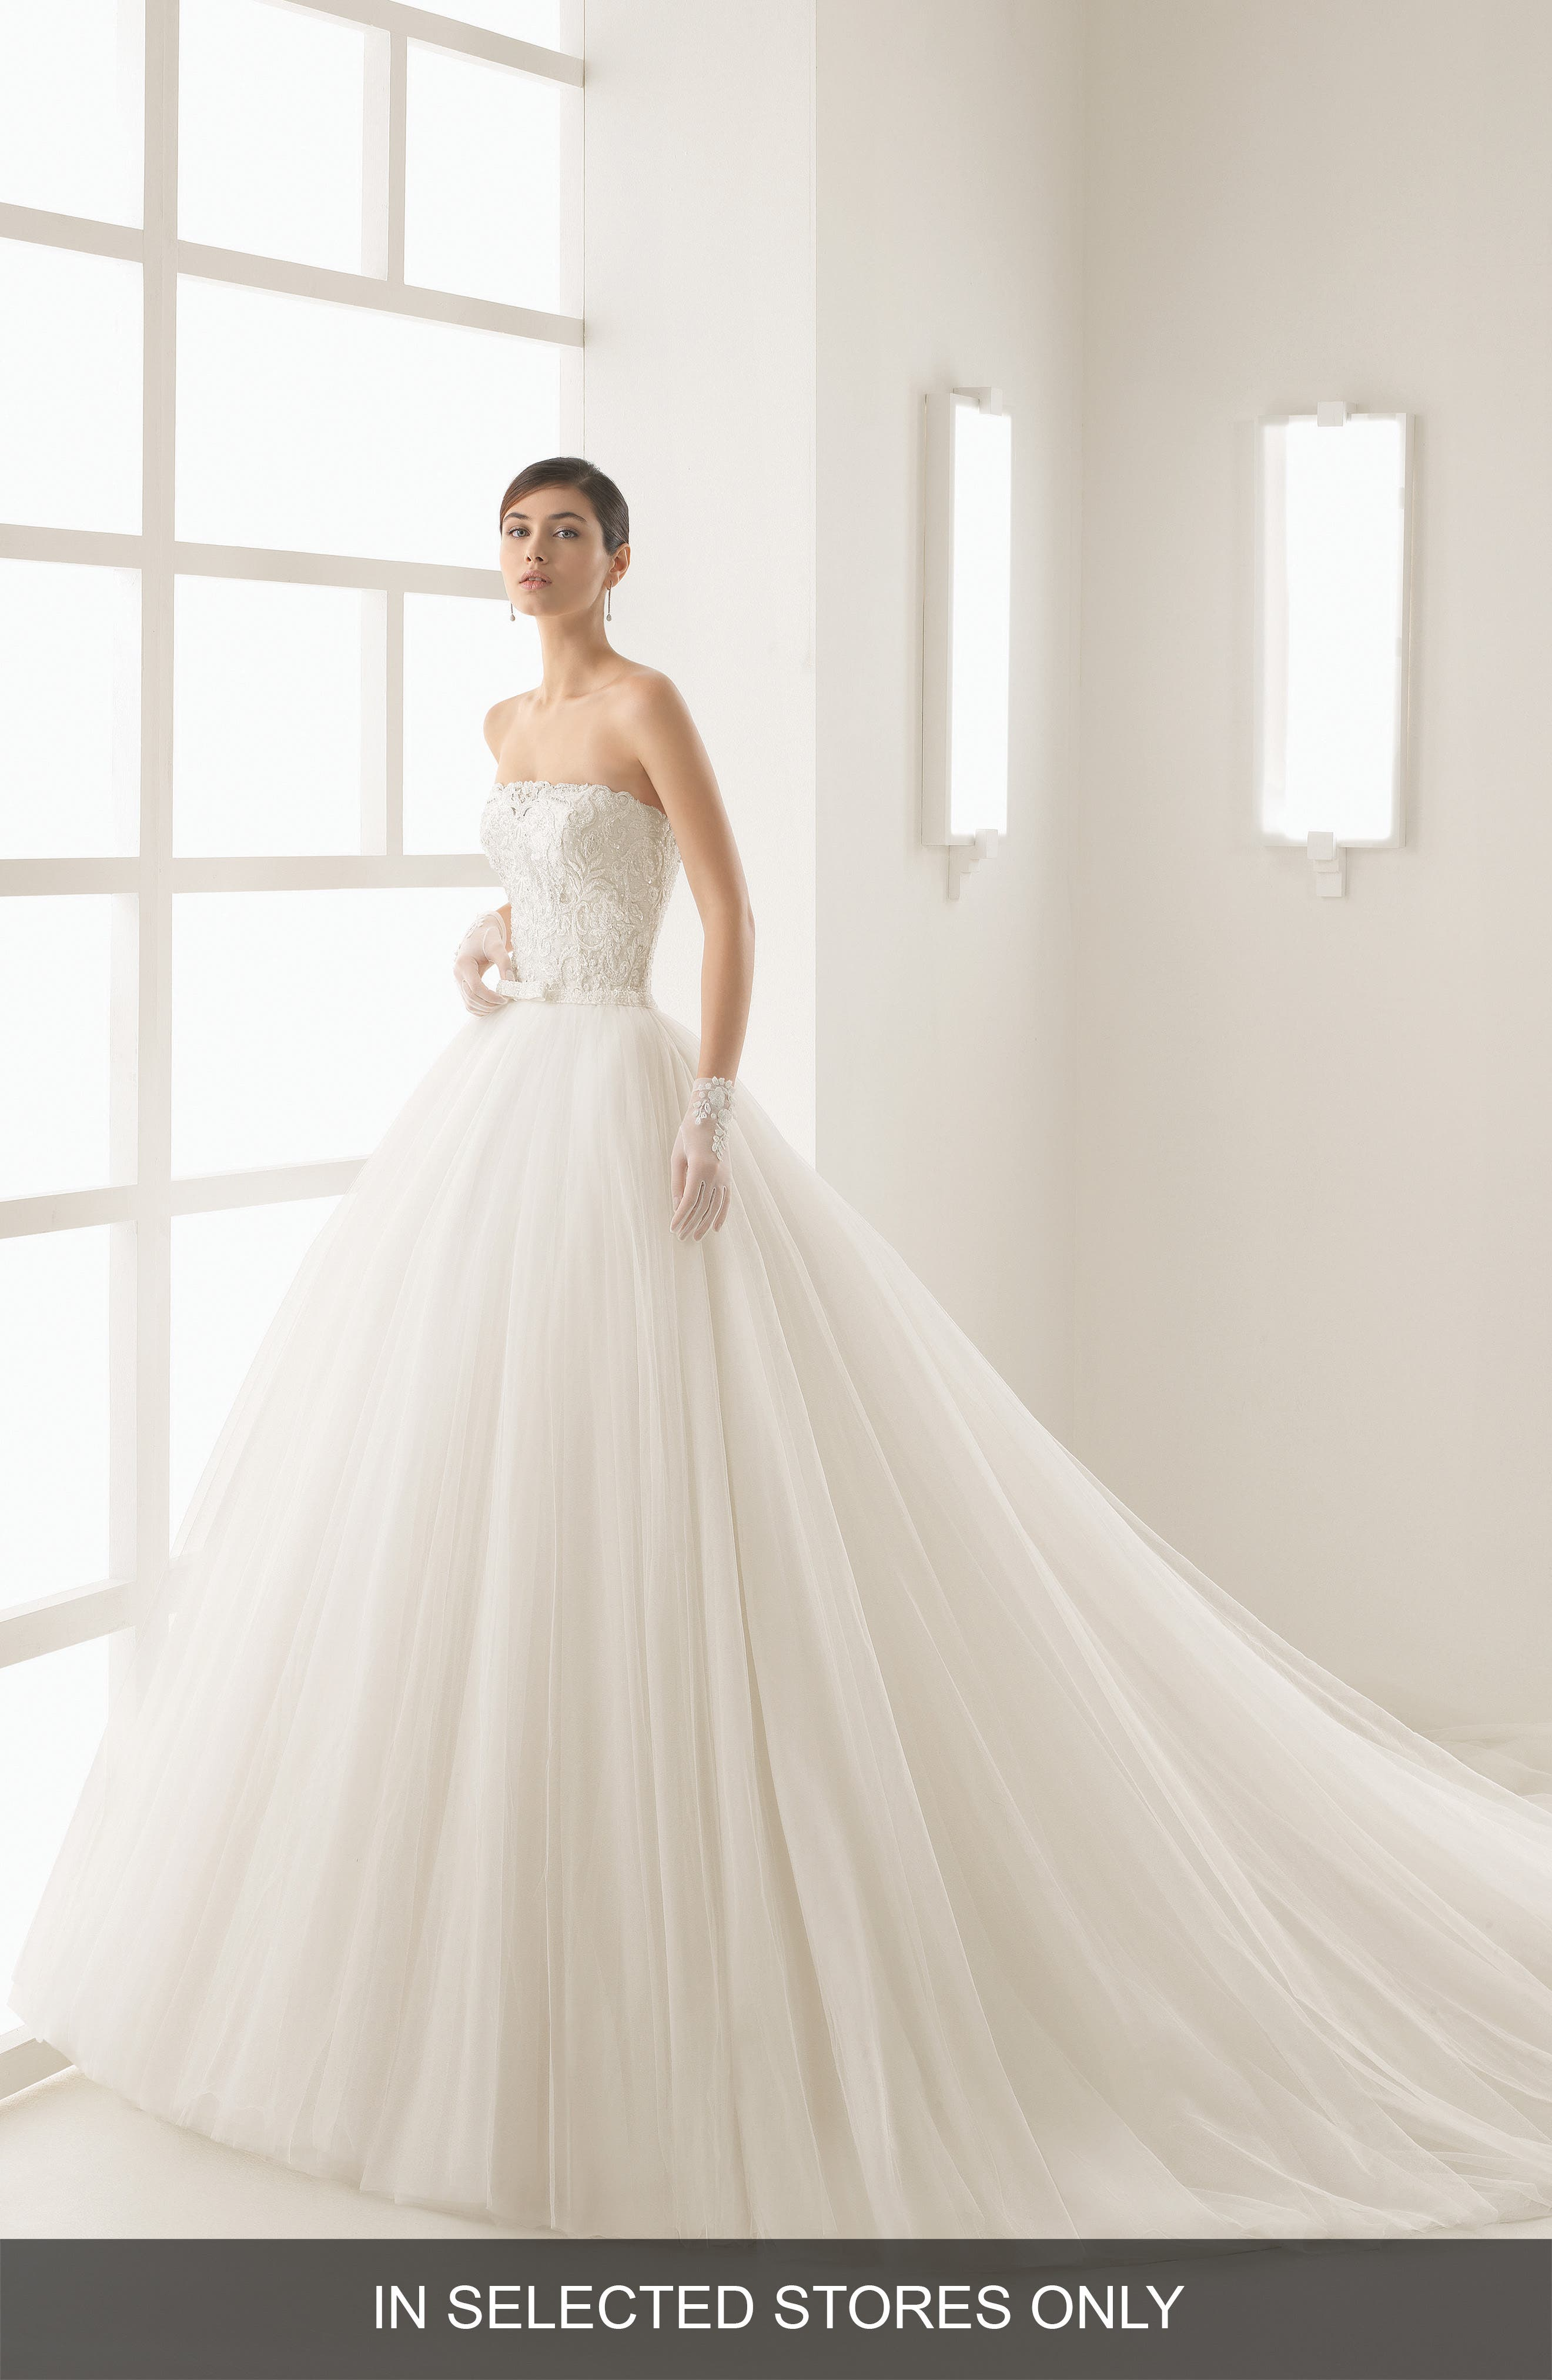 Alternate Image 1 Selected - Rosa Clara Beaded Lace & Tulle Strapless Gown